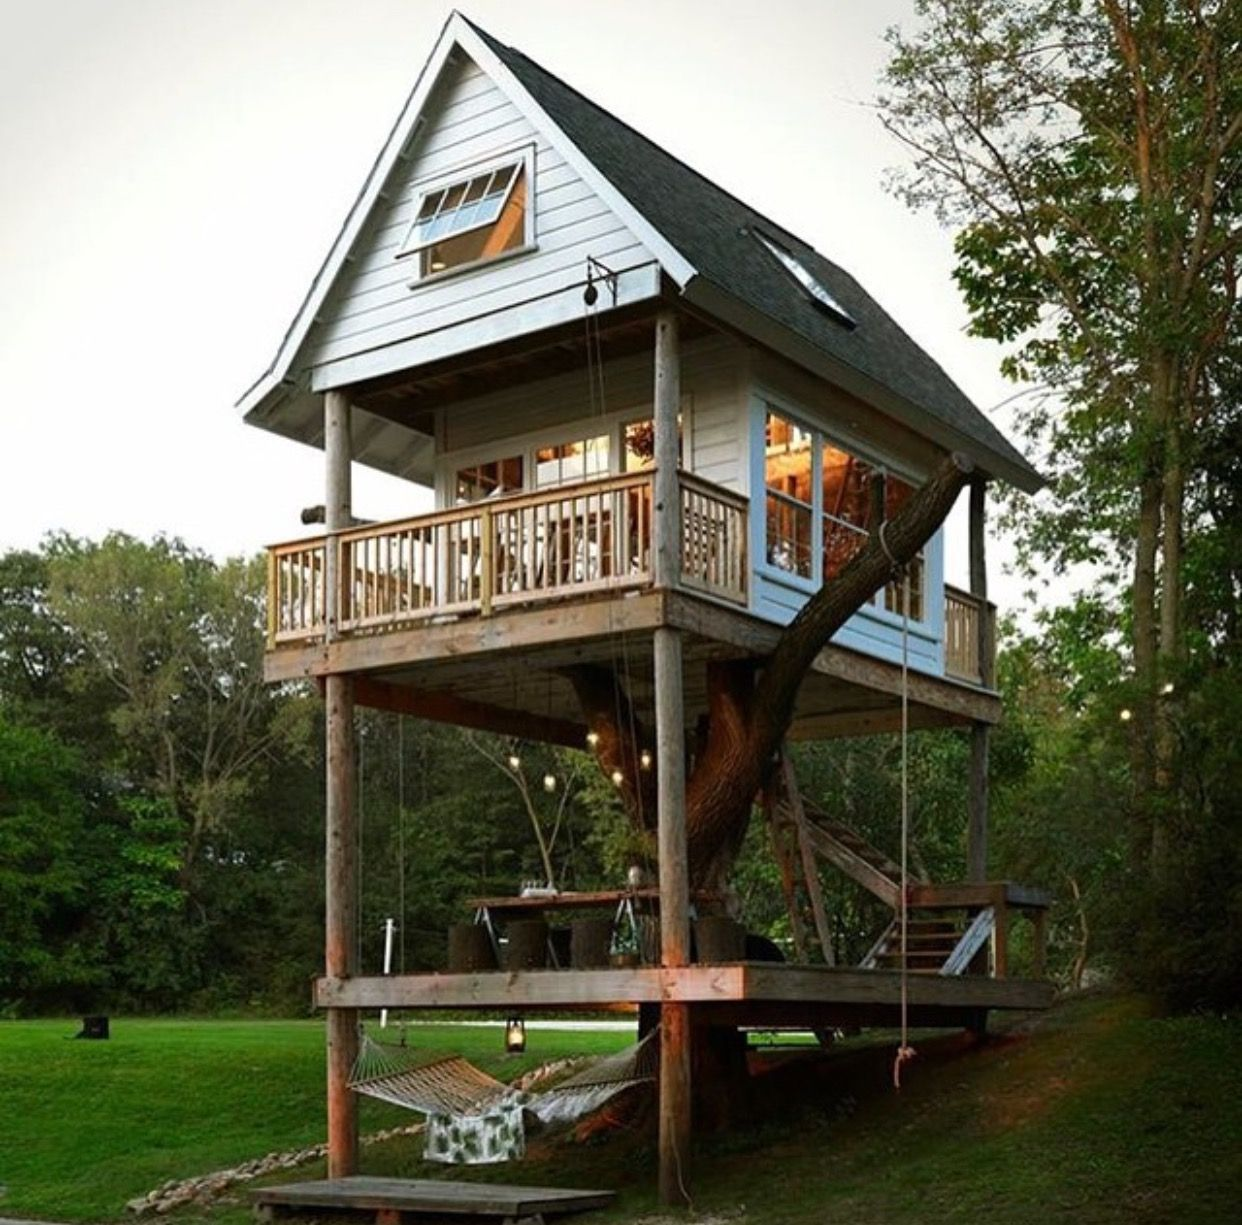 Tree House Image By Mitchel Brandley On Future Home